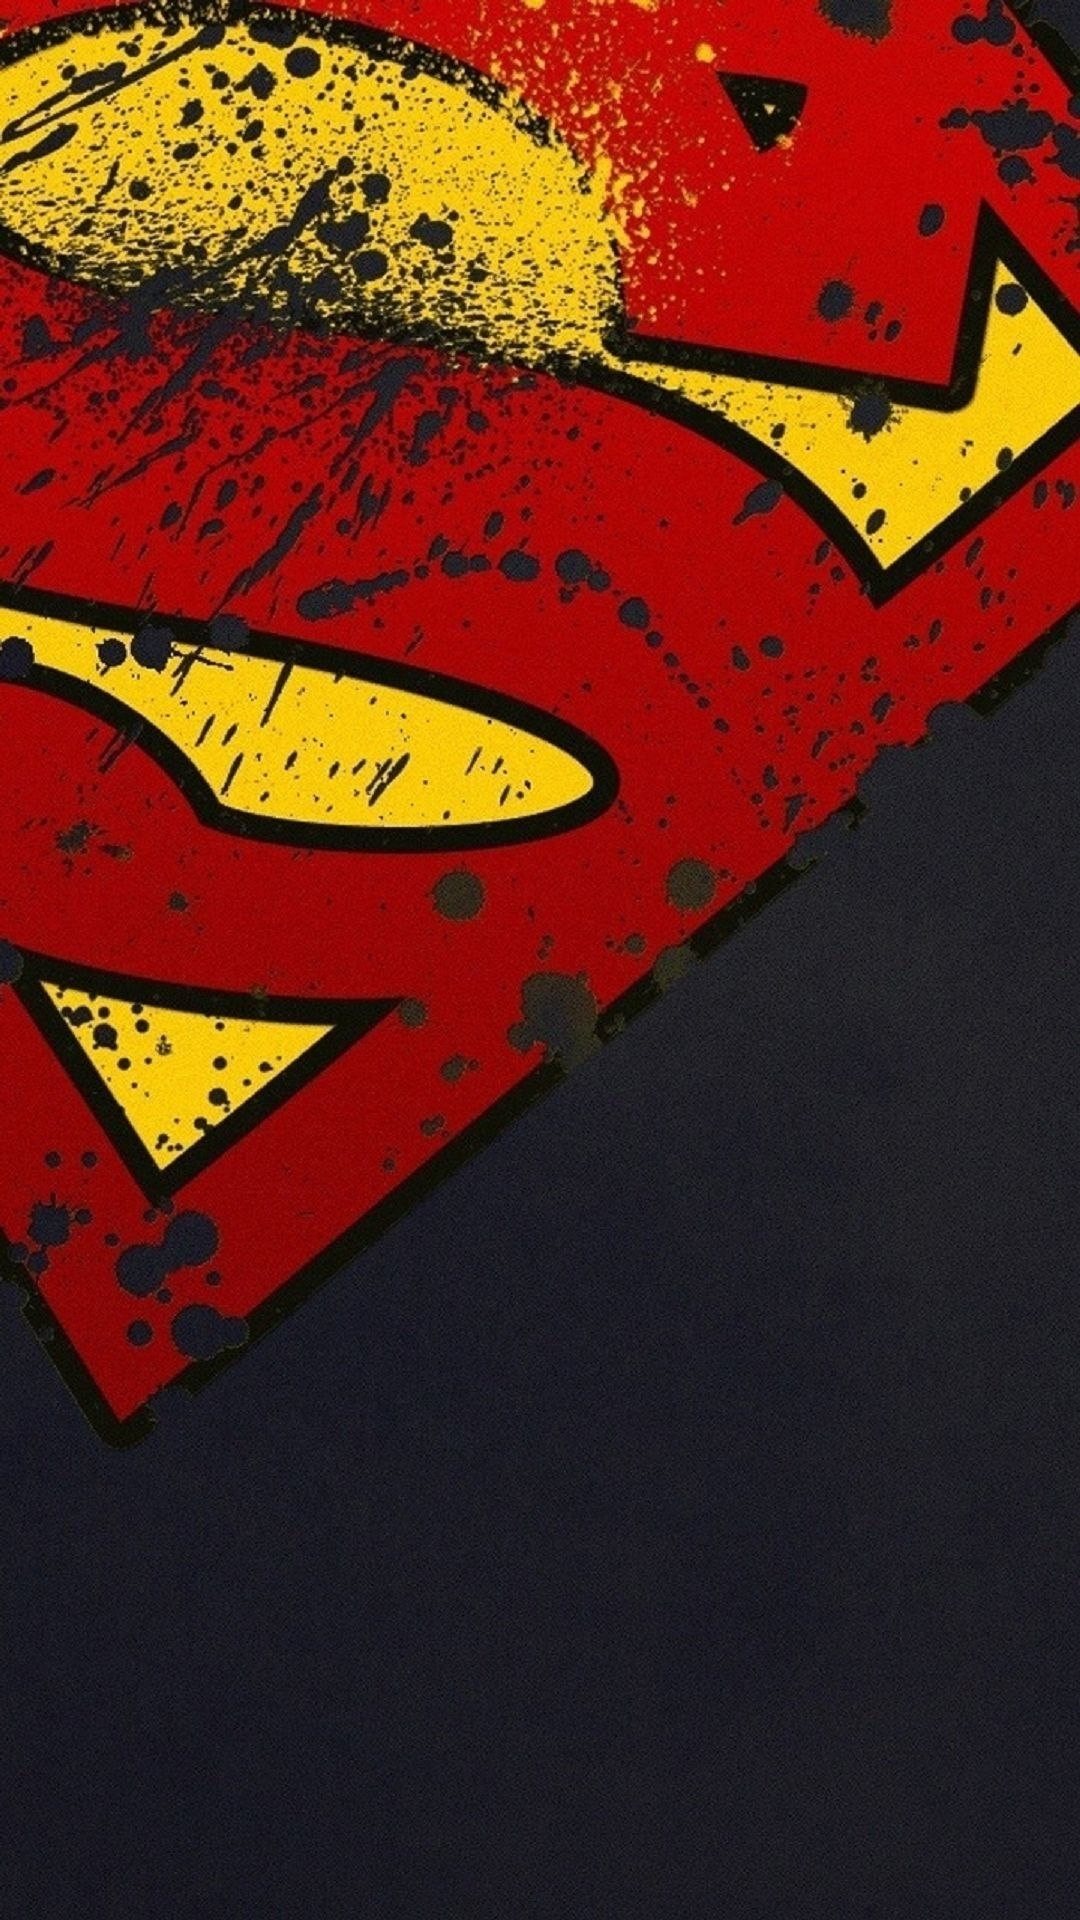 10 New Superman Hd Wallpaper For Android FULL HD 1920×1080